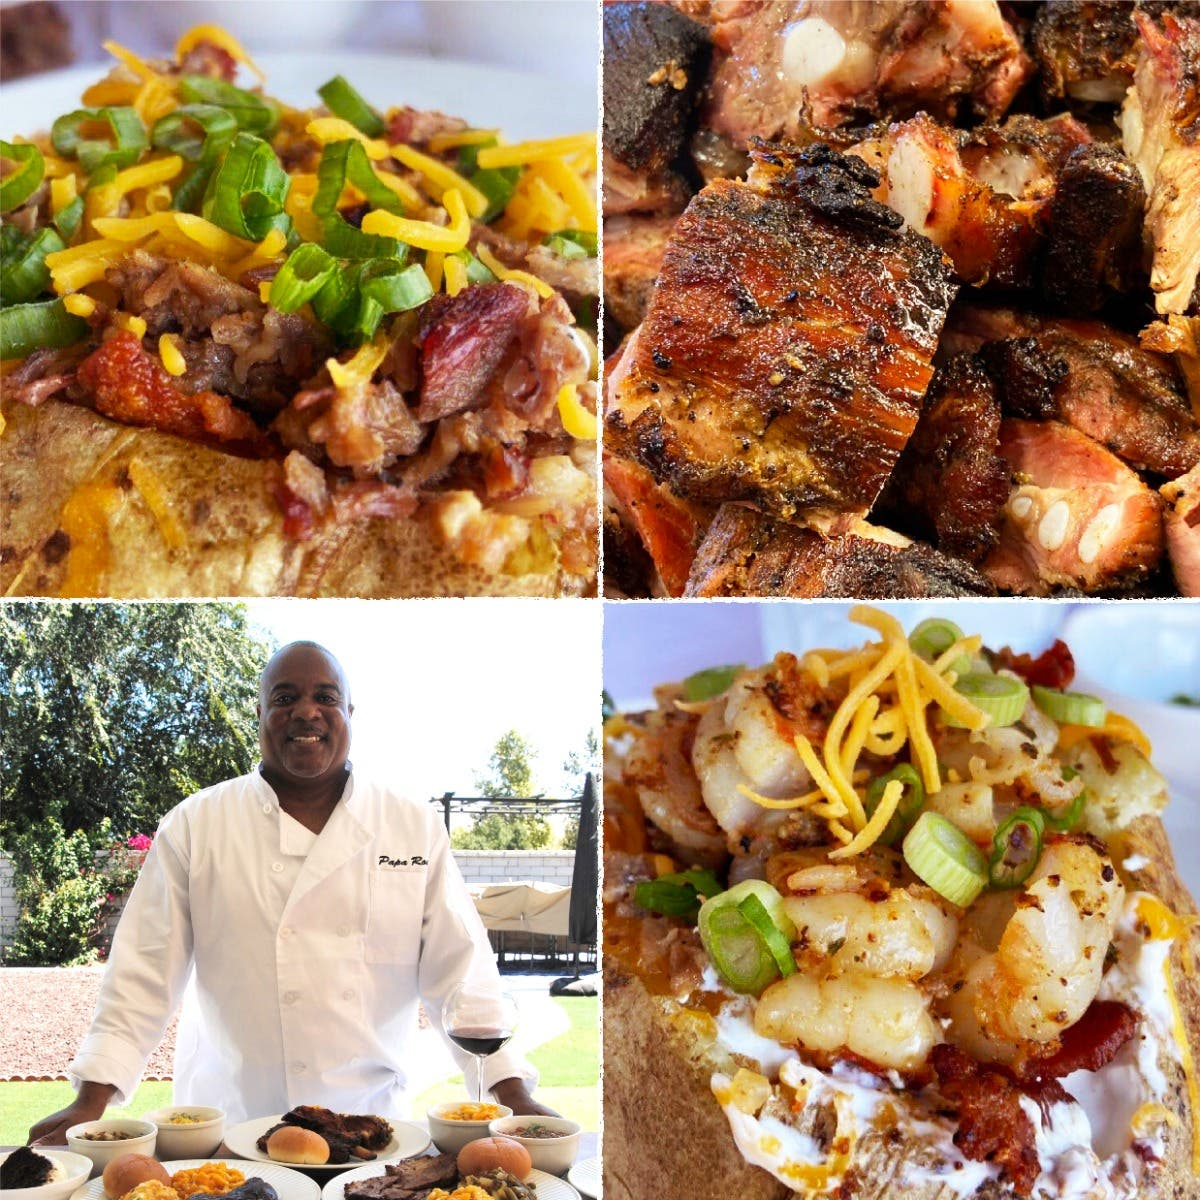 Local Event: Brisket & Shrimp Loaded Potatoes & more | Sunday Pickup in Perris